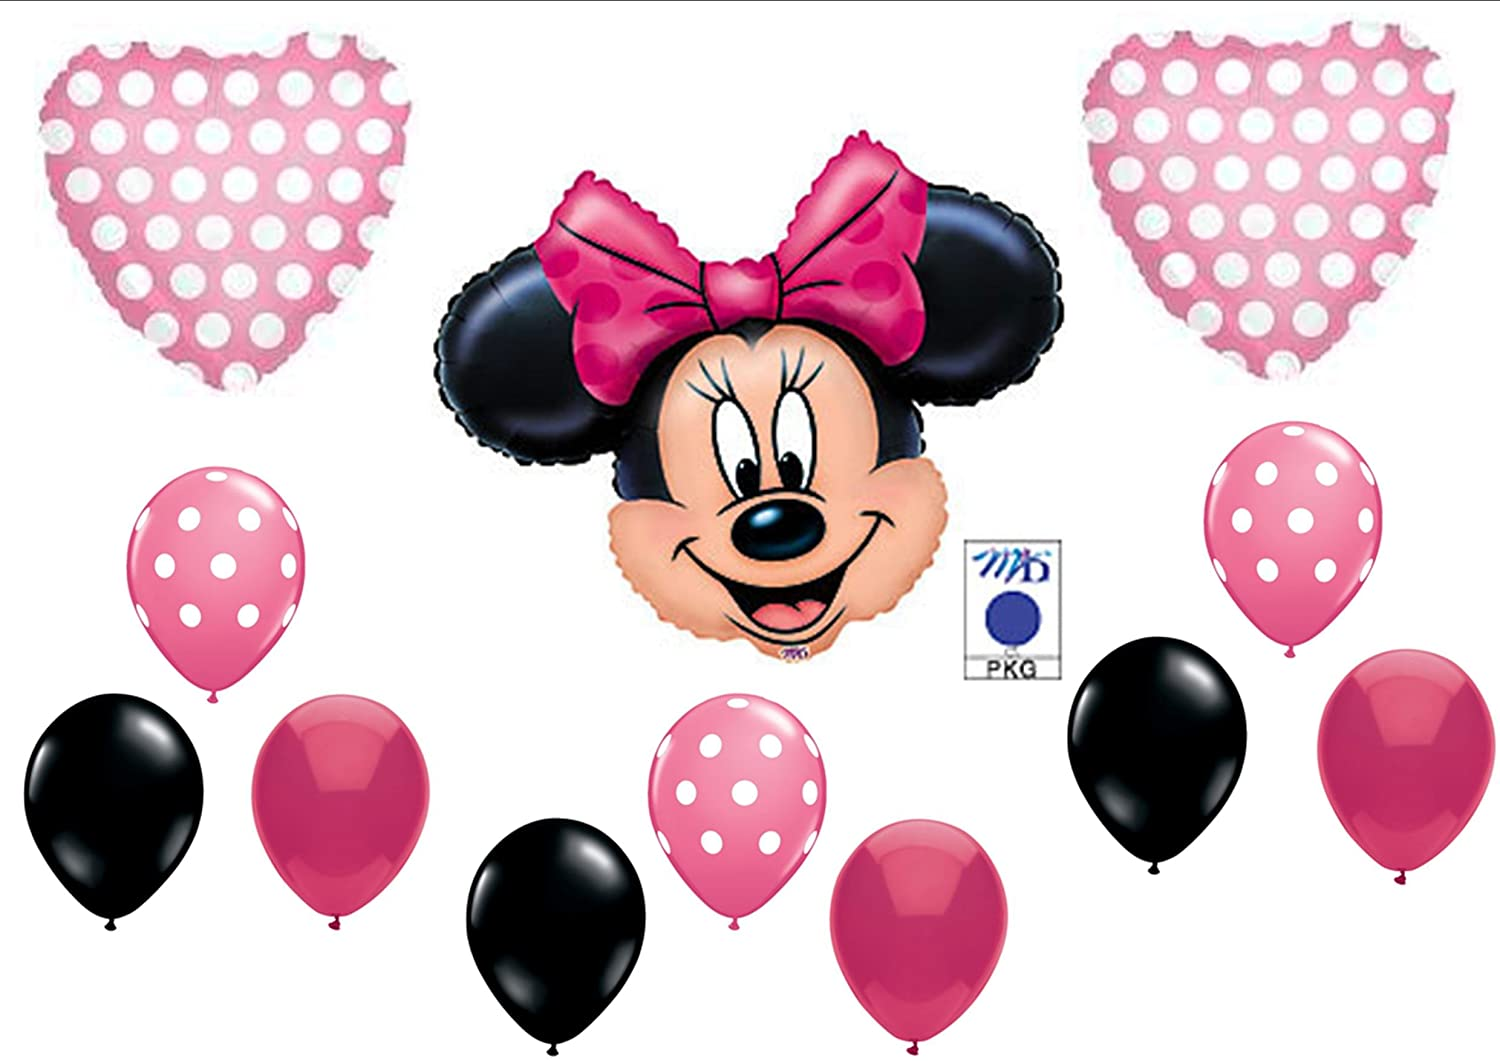 PINK MINNIE MOUSE BIRTHDAY PARTY Balloons Decorations Supplies by Anagram